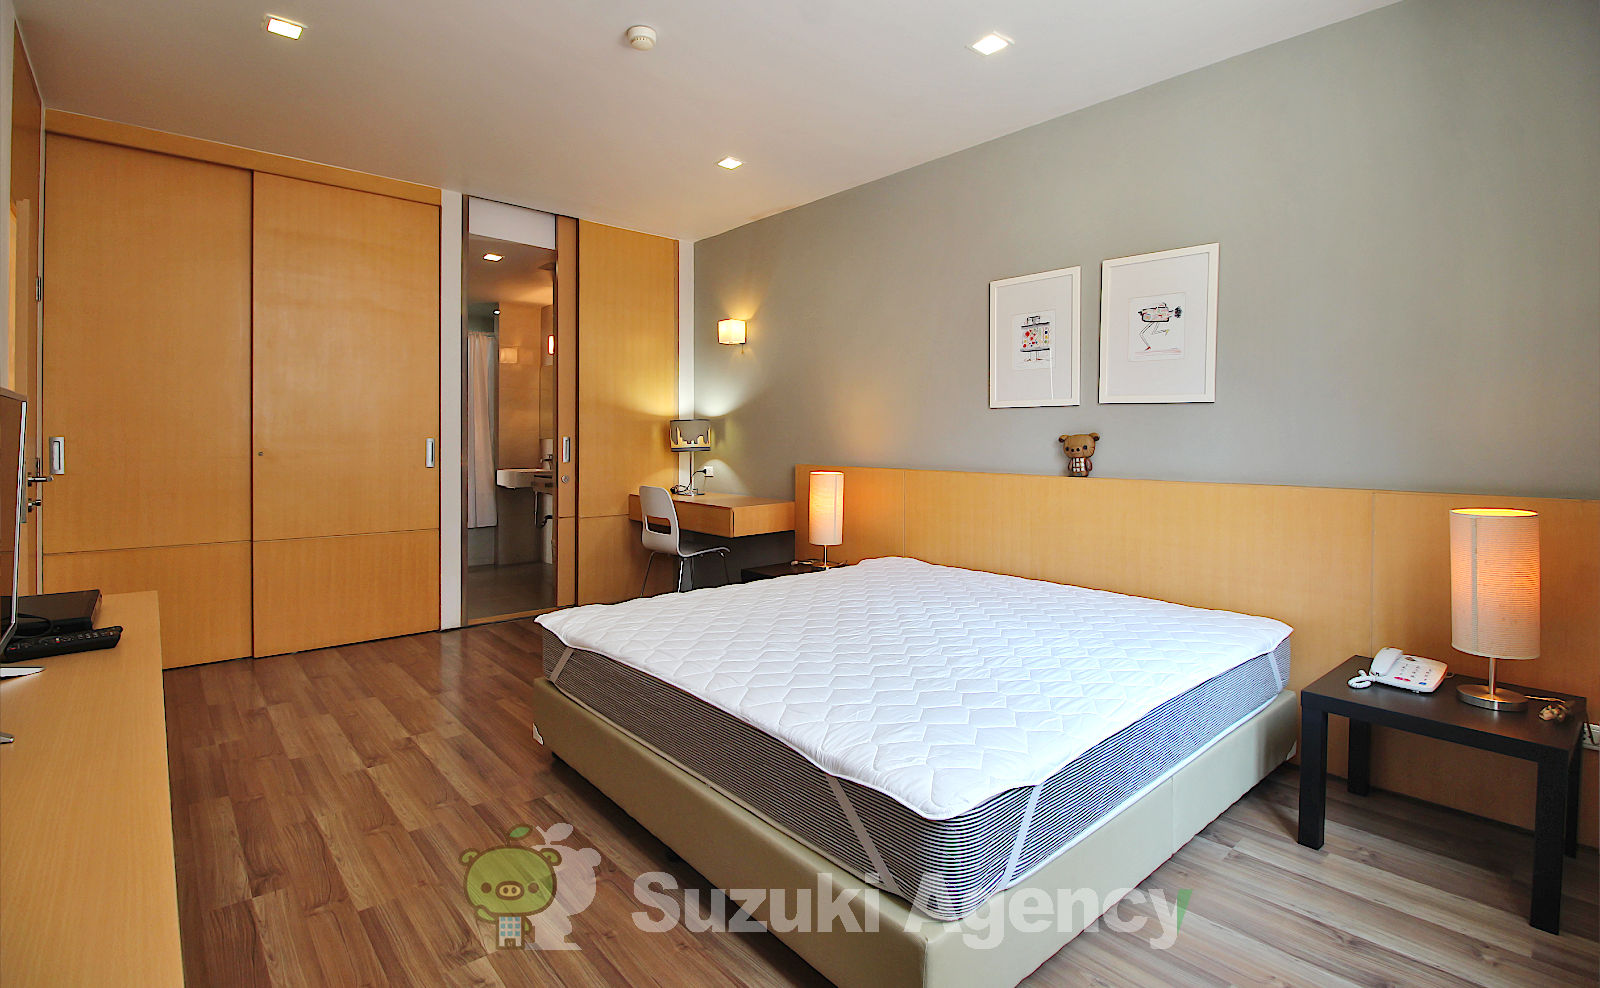 39 Residence:1Bed Room Photos No.8